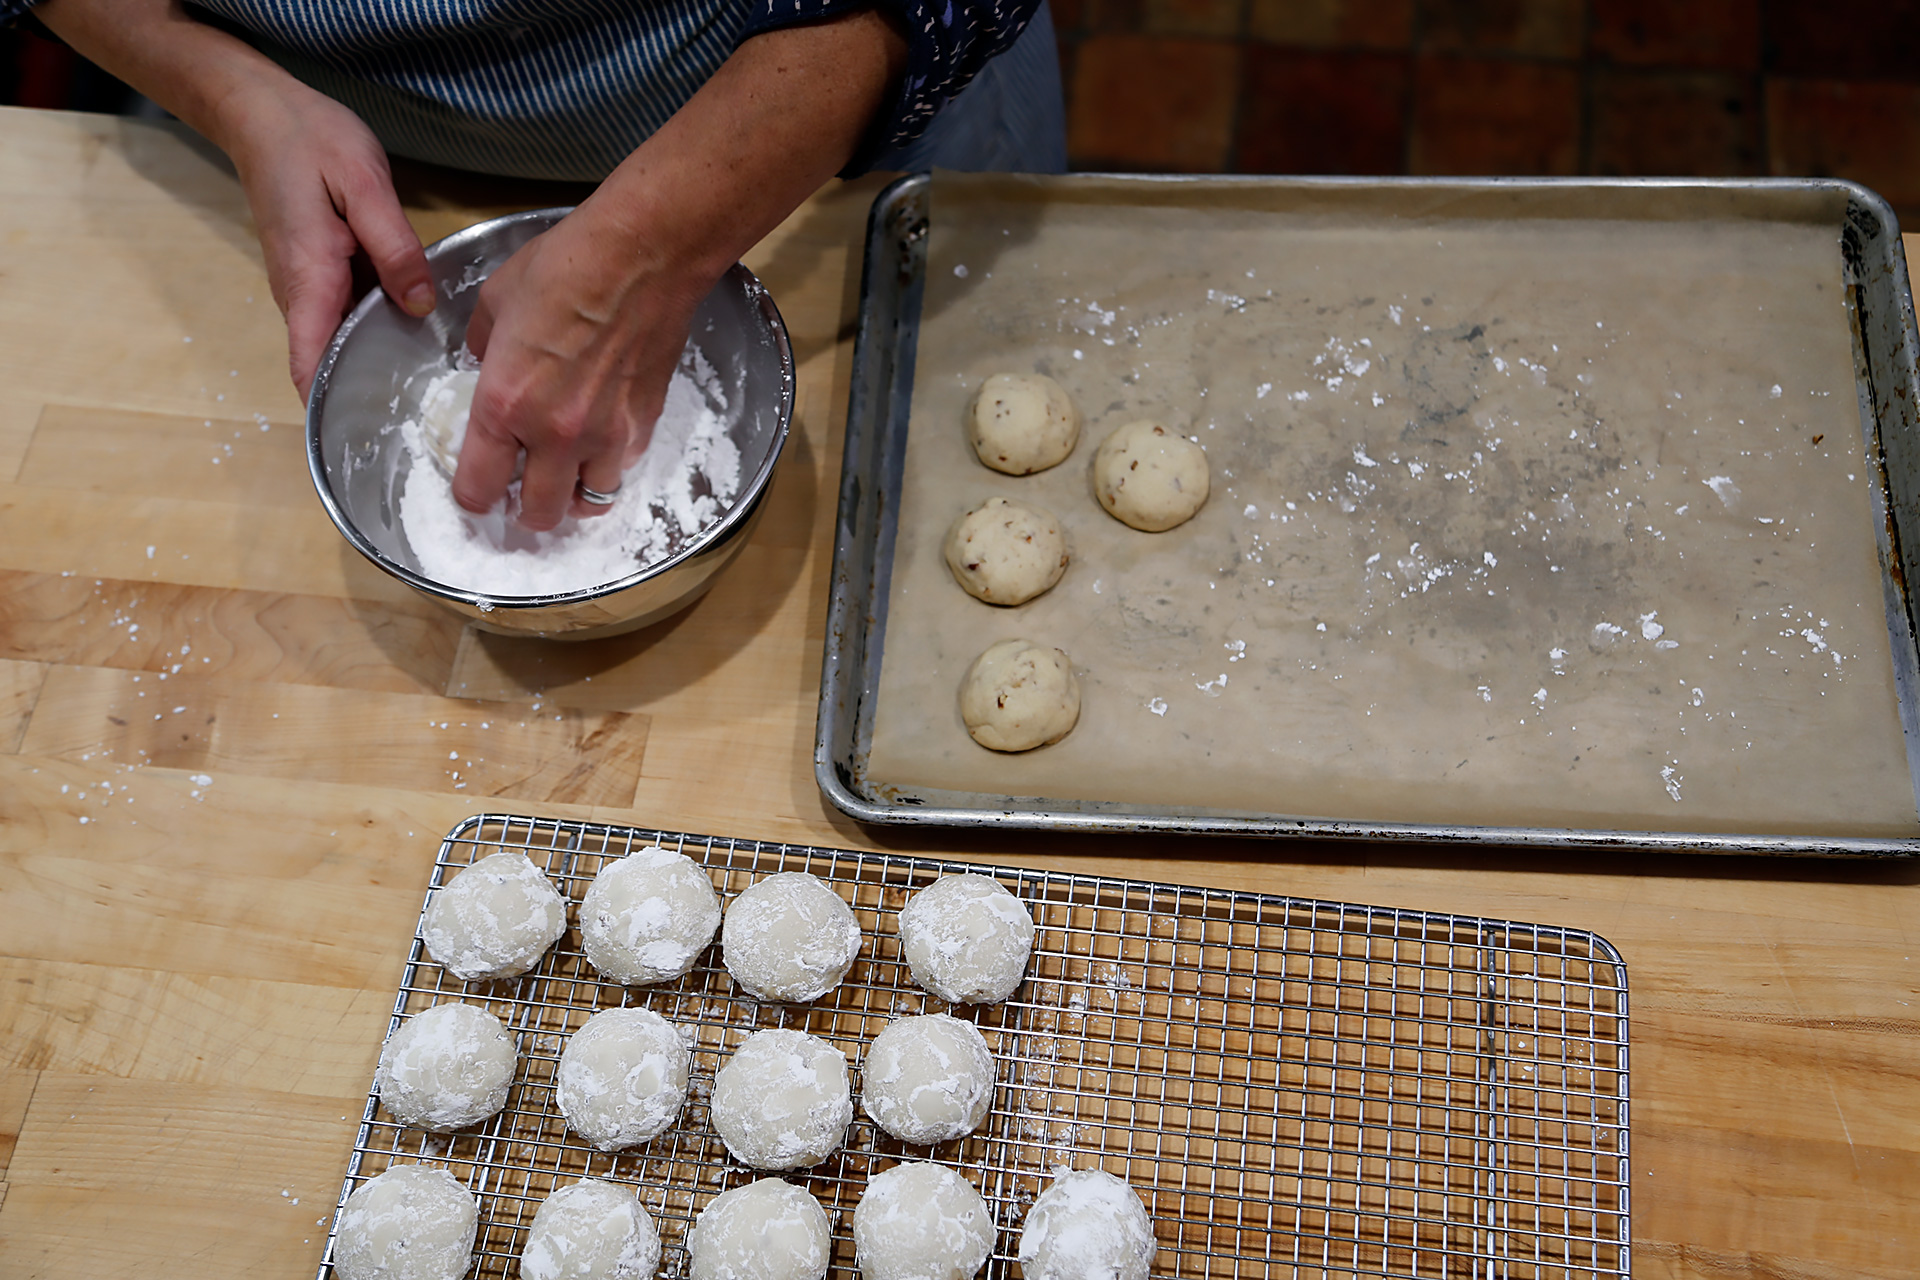 When cool enough to handle, roll the cookies in the reserved powdered sugar.